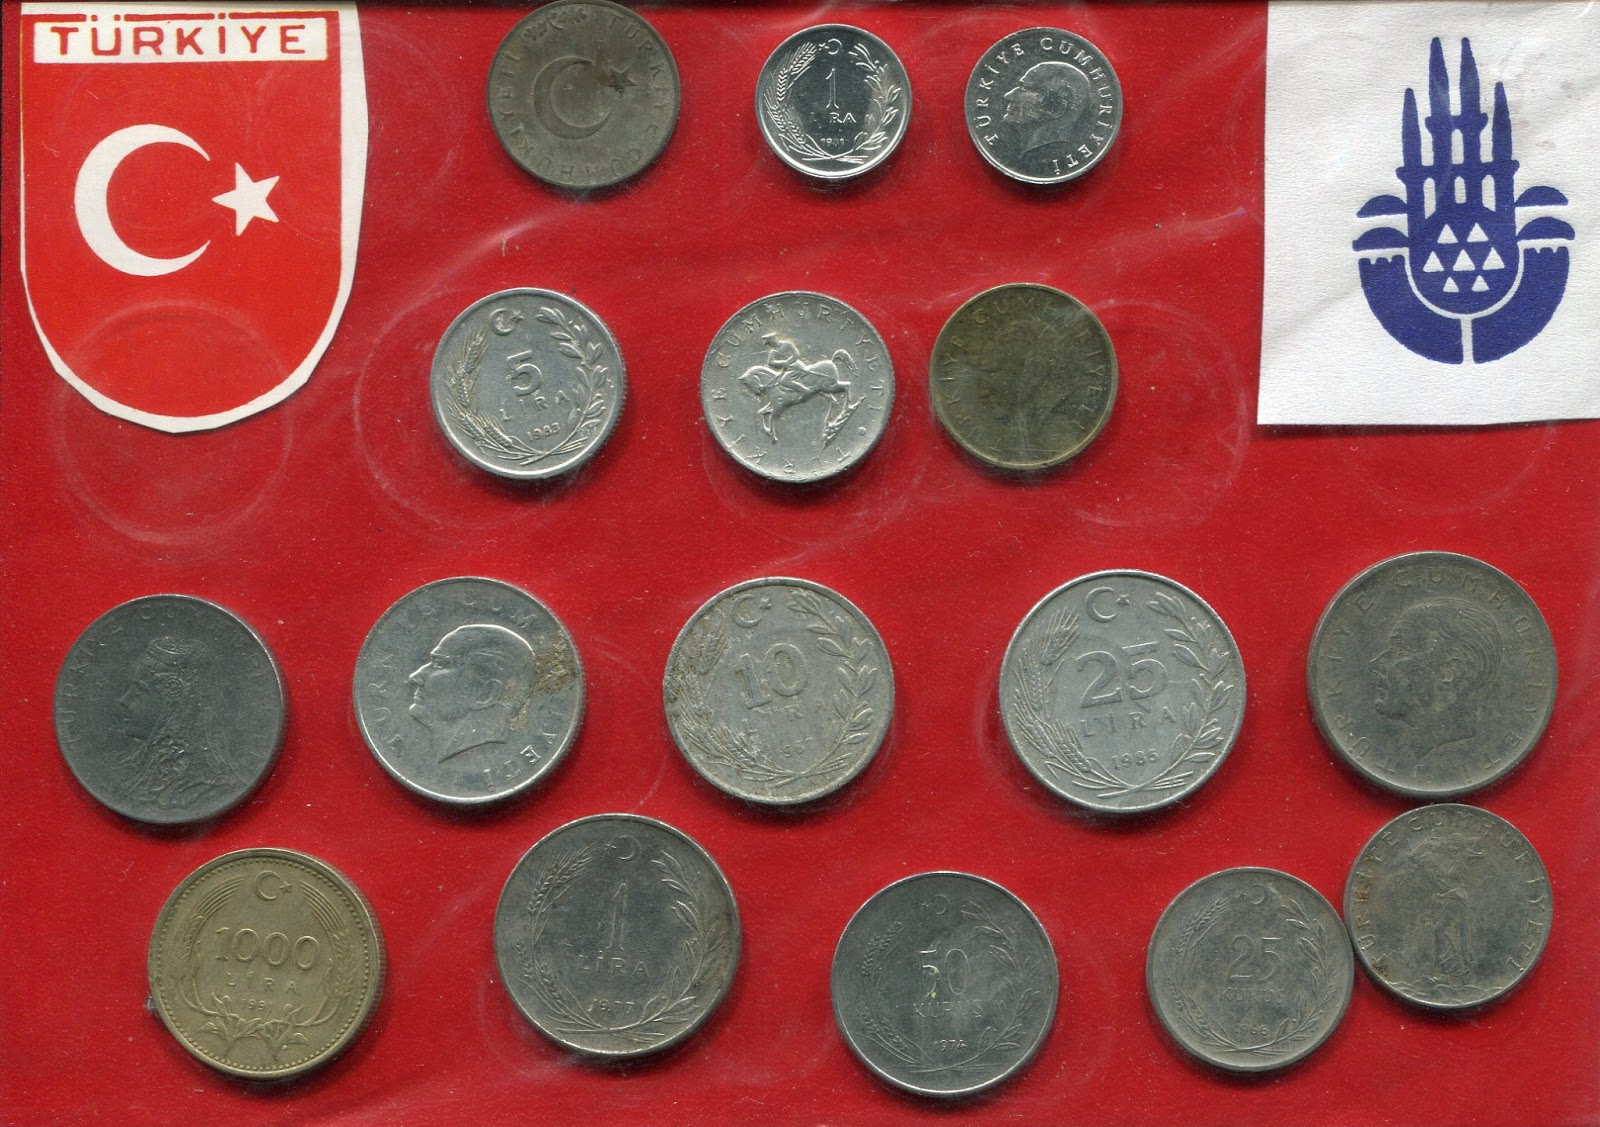 The Above Is Another Orted Collection Of First Turkish Lira Coins In Top Row A 1 Coin 1981 Second 5 1983